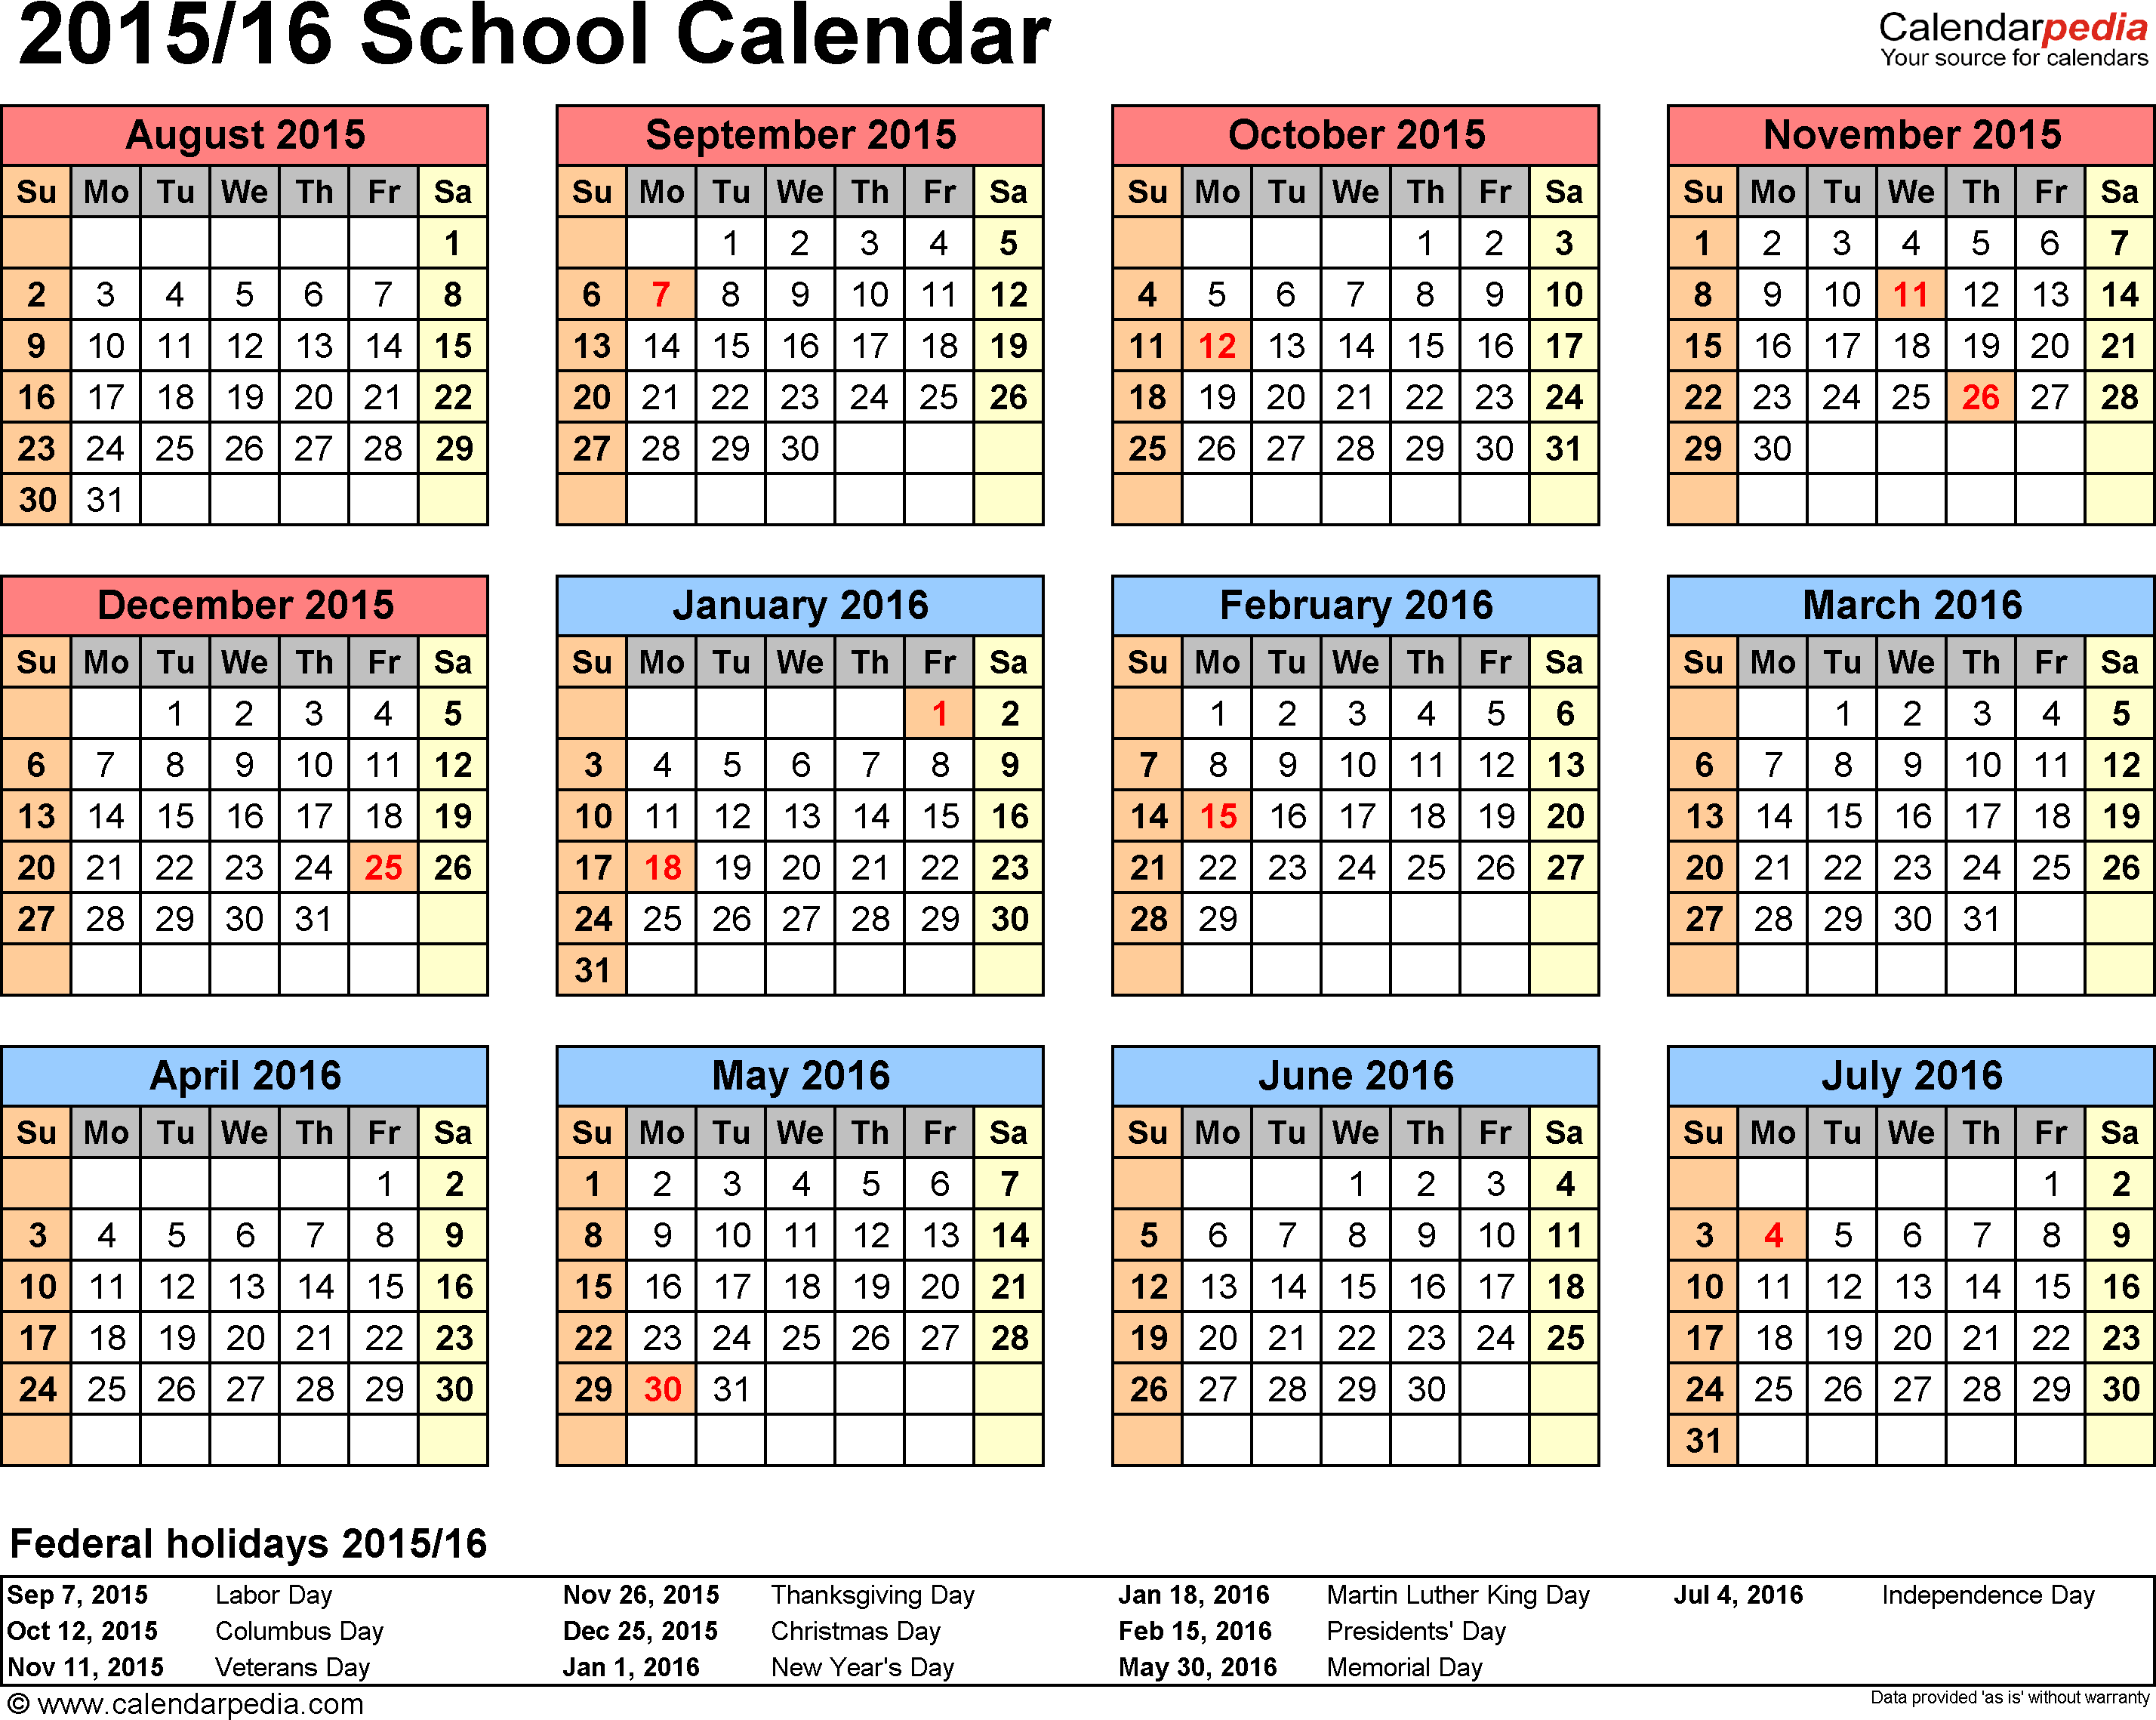 school calendars as printable word templates template 4 school calendar 2015 16 for word landscape orientation year at